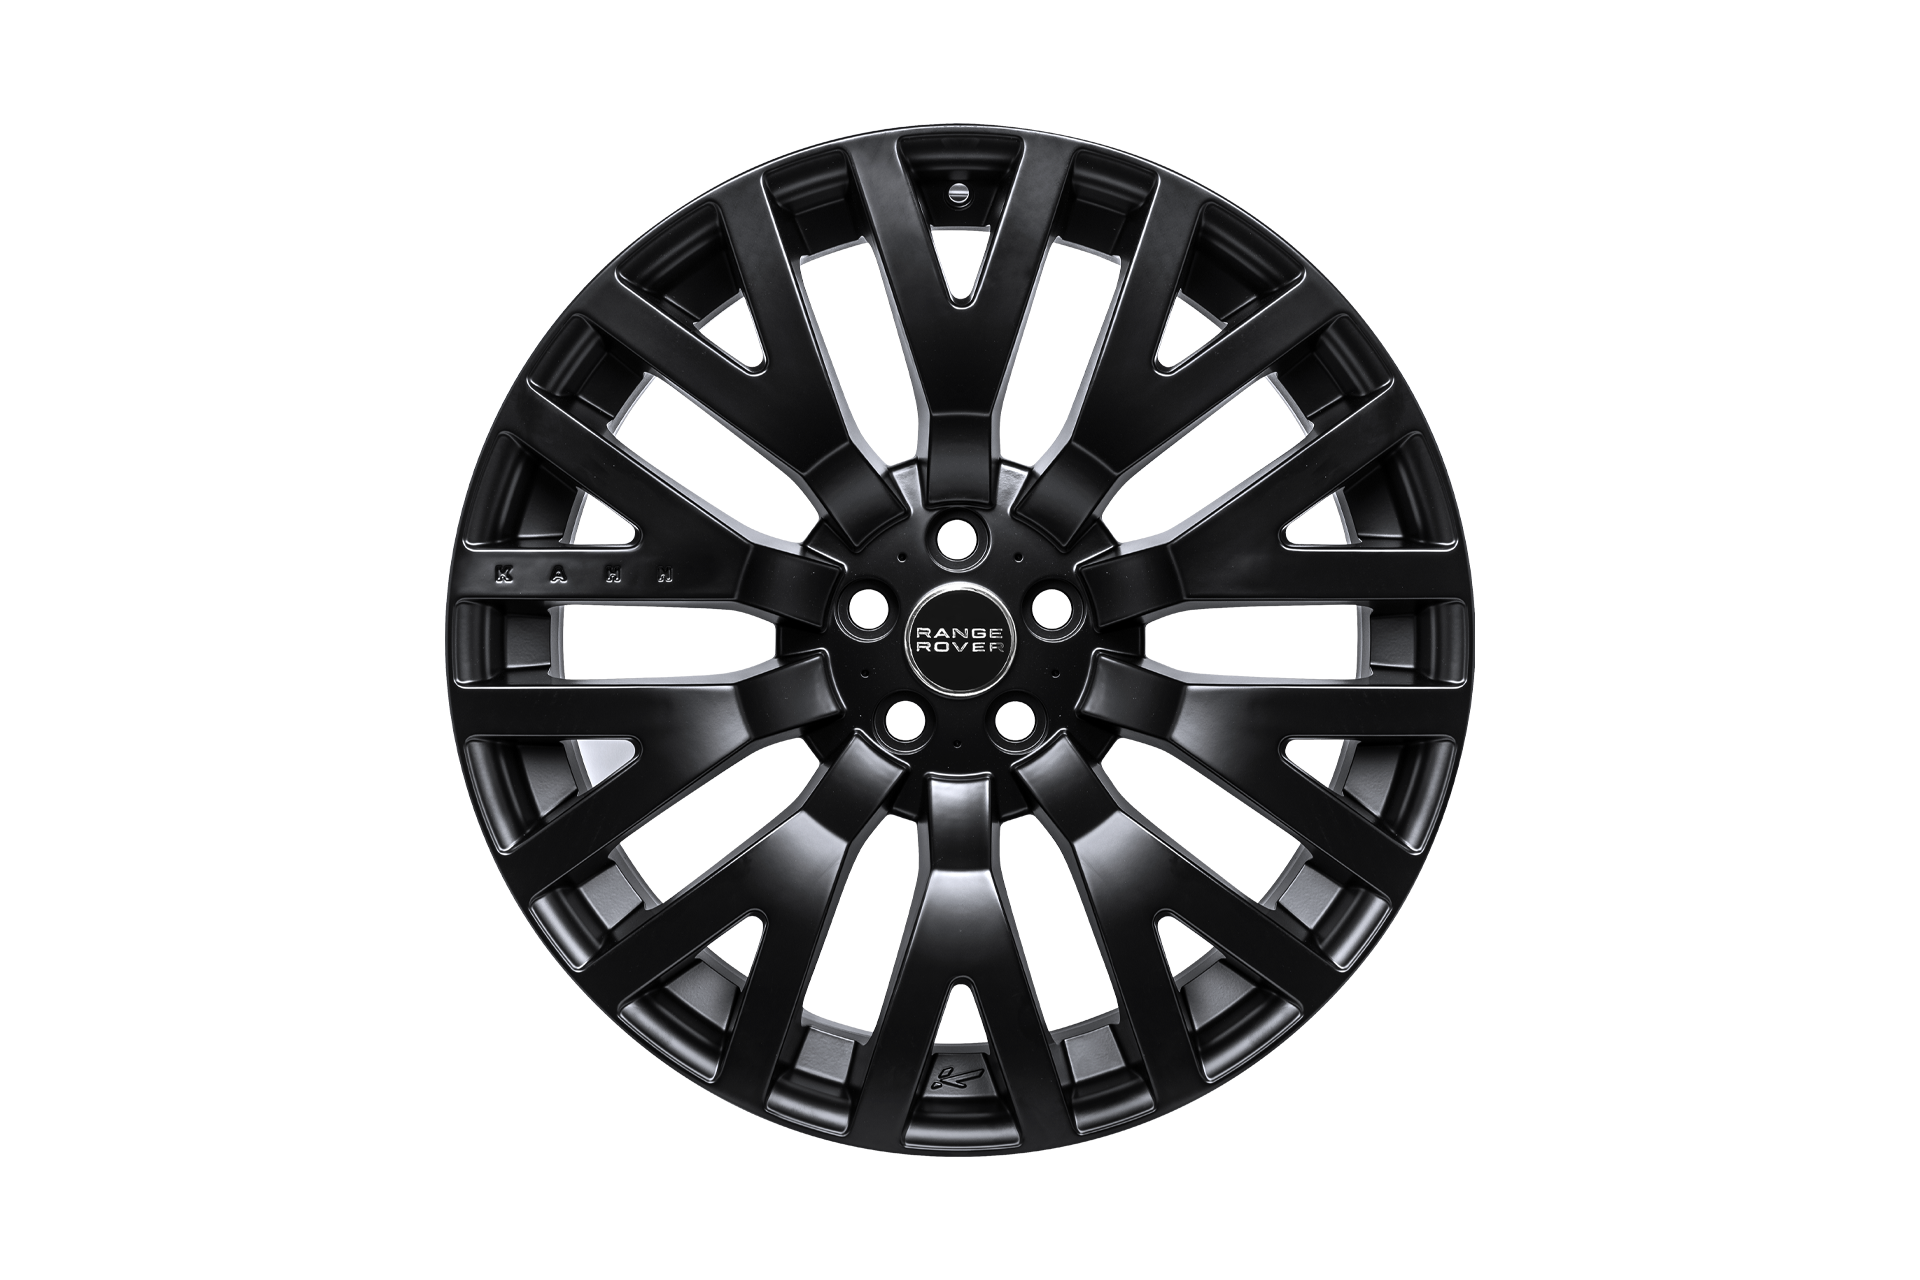 Range Rover (2002-2009) Rs Light Alloy Wheels by Kahn - Image 3609